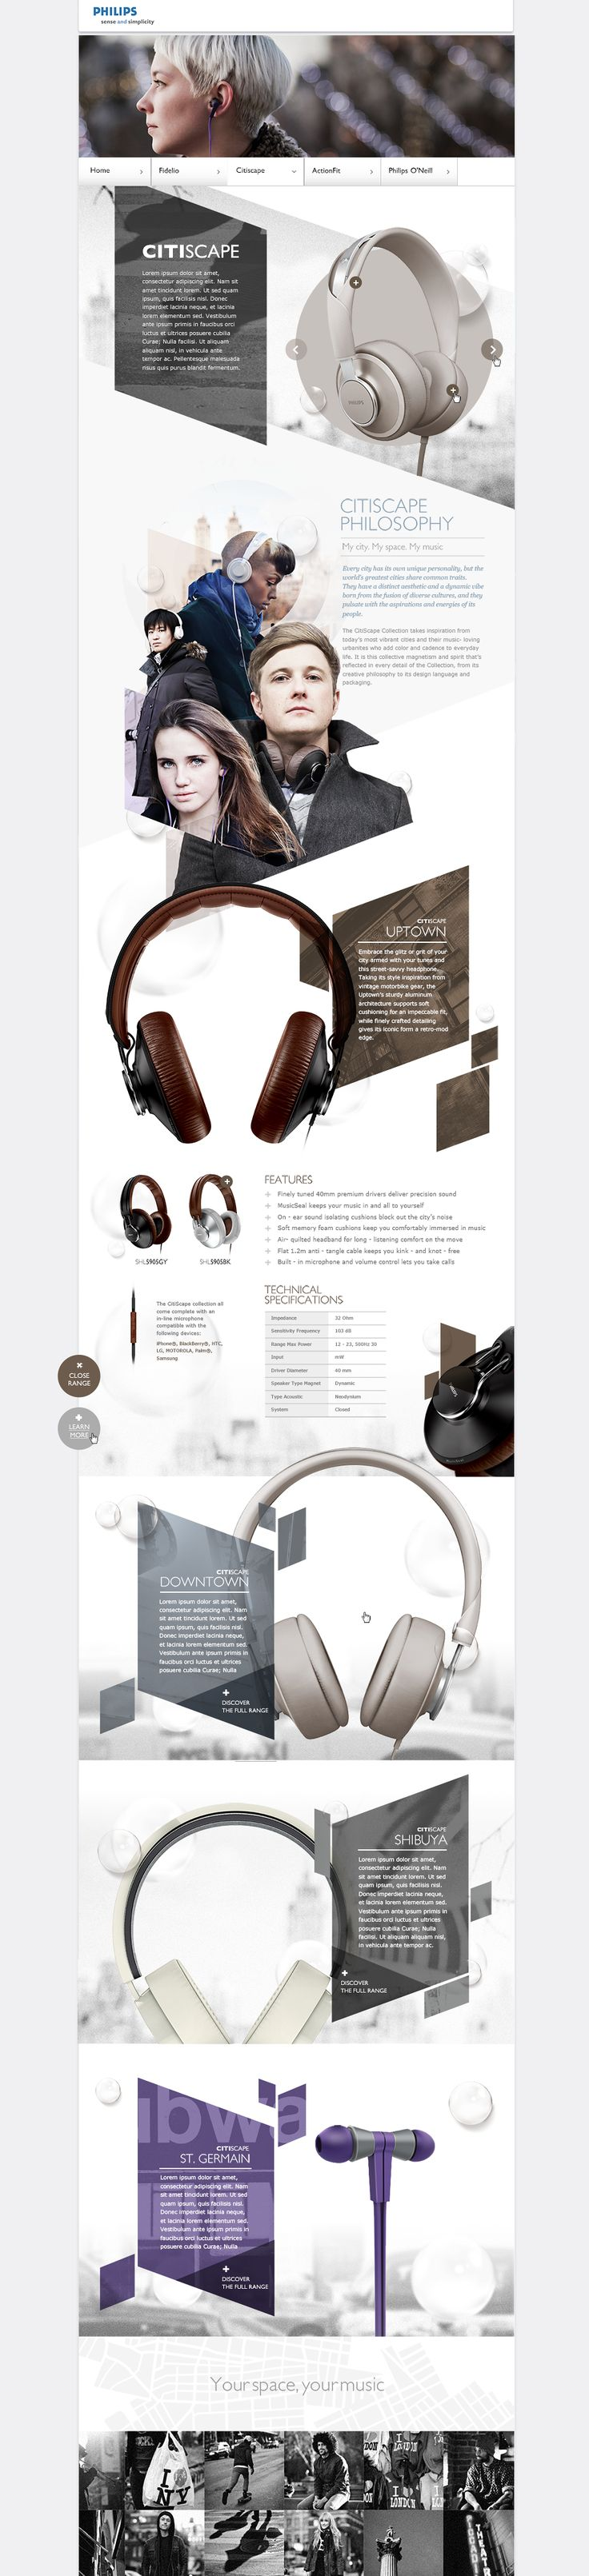 Upskydown / Henry Daubrez Castaño | #webdesign #it #web #design #layout #userinterface #website #webdesign < repinned by www.BlickeDeeler.de | Take a look at www.WebsiteDesign-Hamburg.de